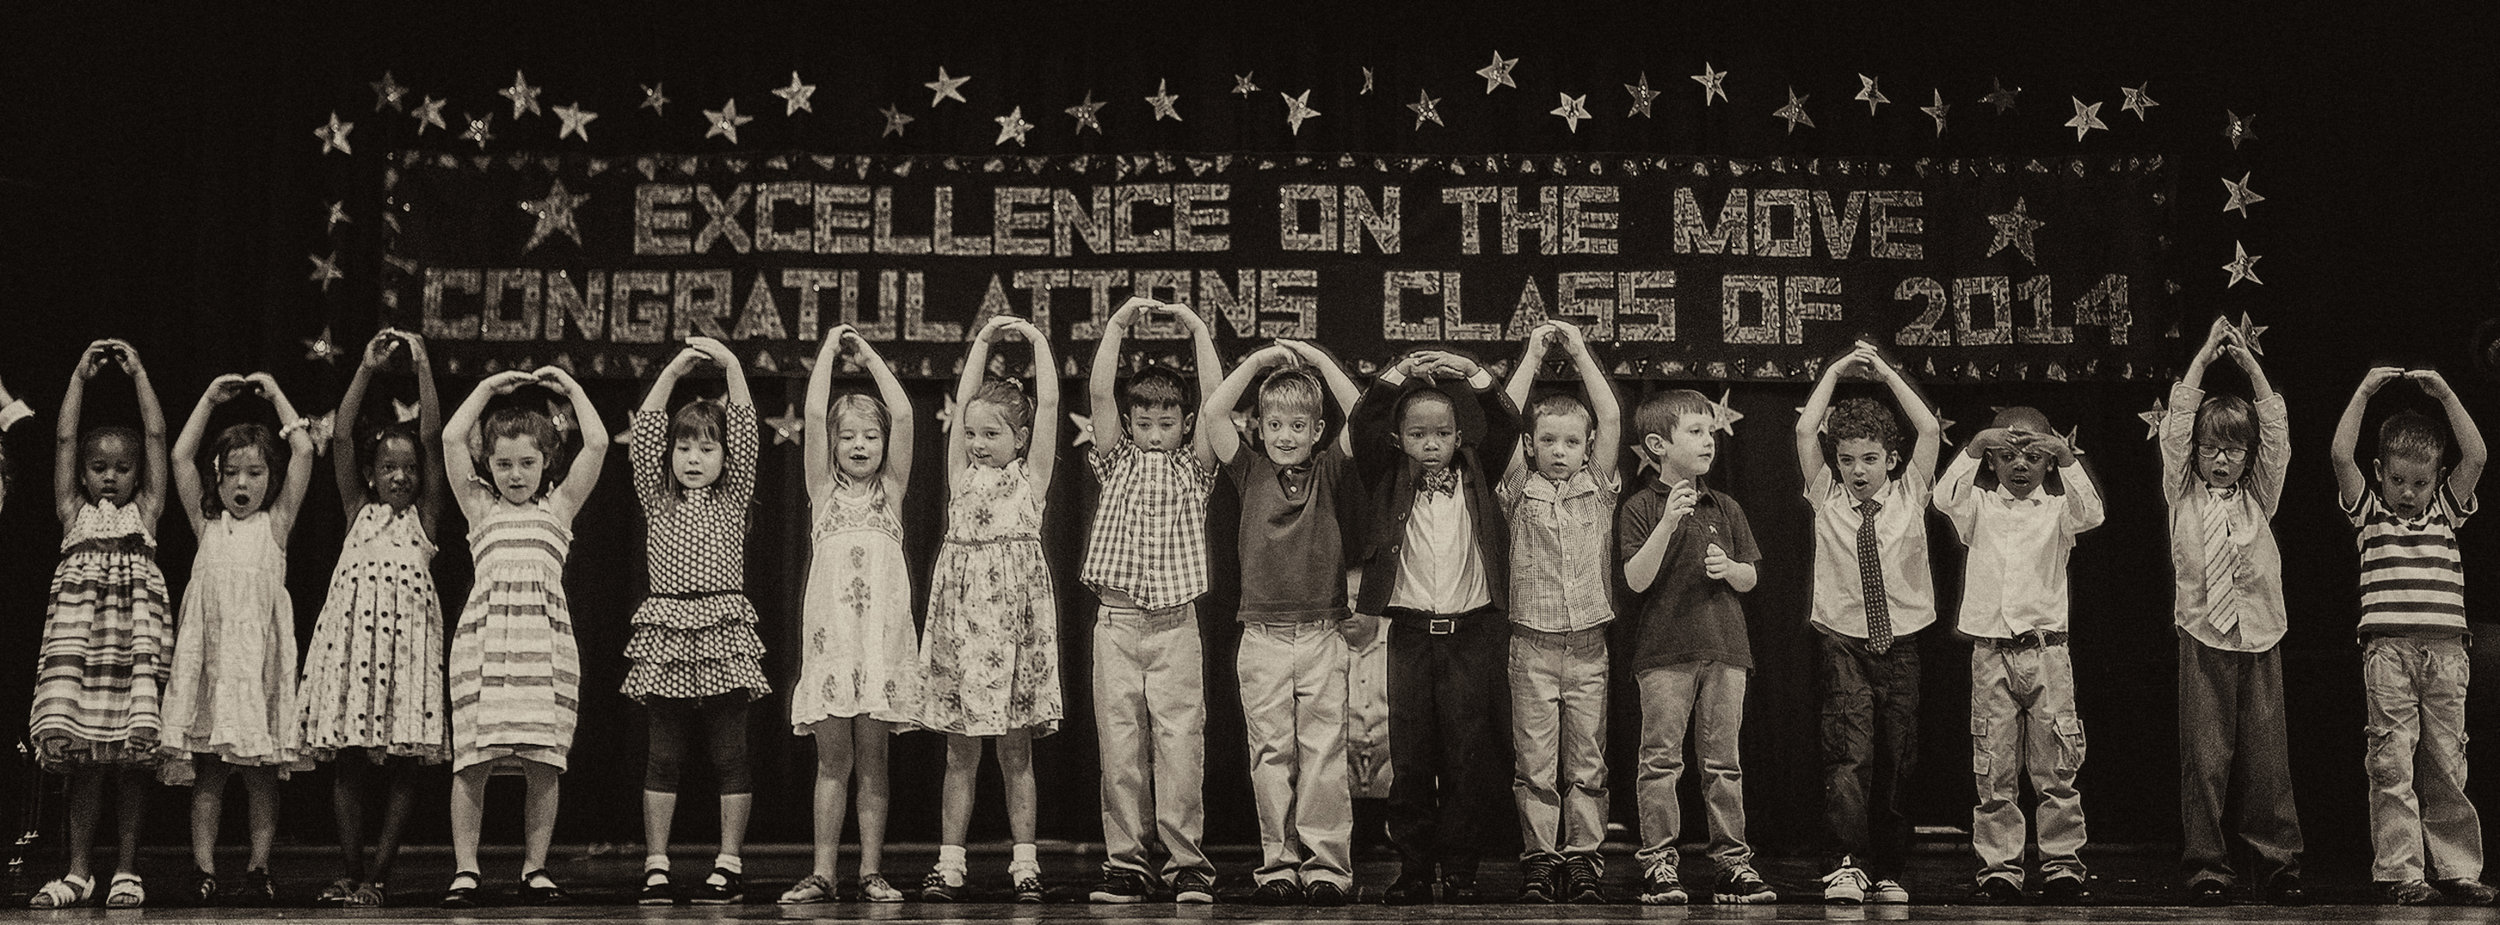 Our youngest Peabody Elementary School Students perform like the stars they are!  Photo credit: Djenno Bacvic Photography